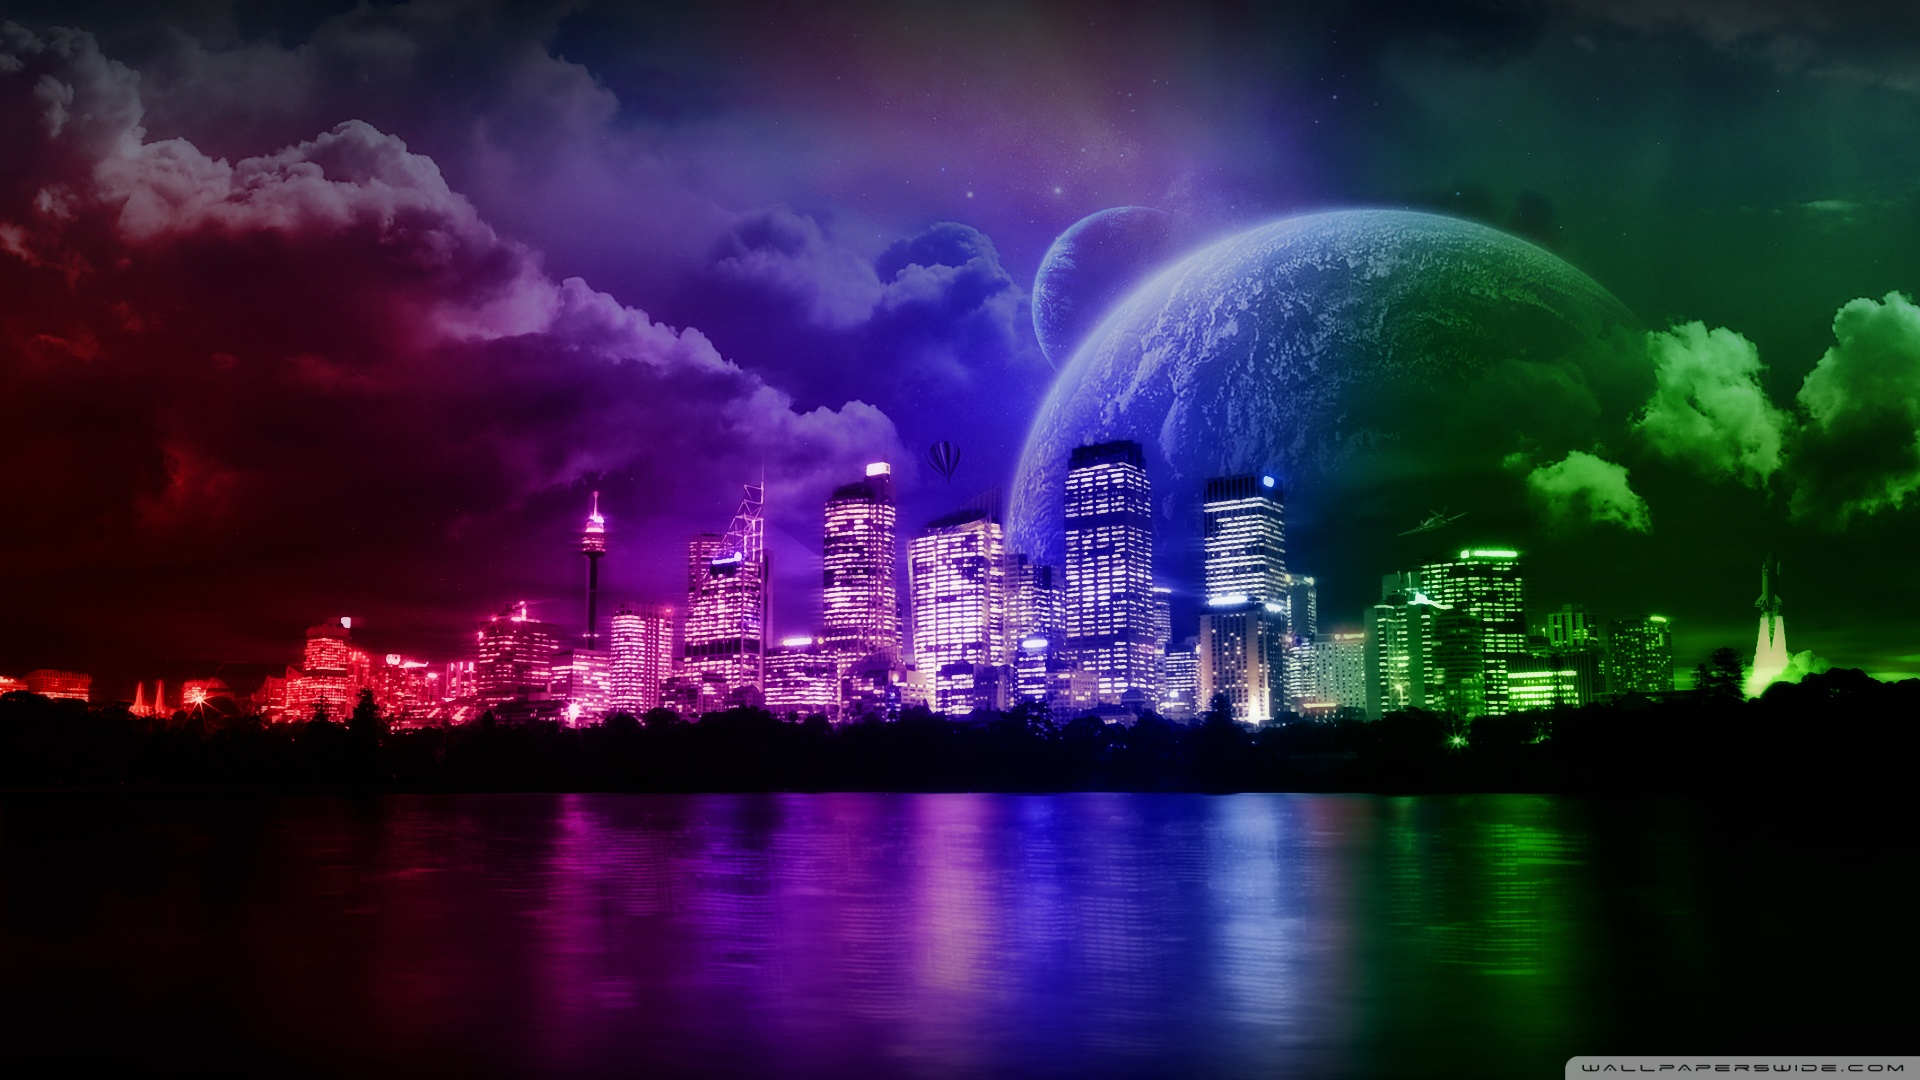 Dream City Wallpaper 1920x1080 Dream City 1920x1080